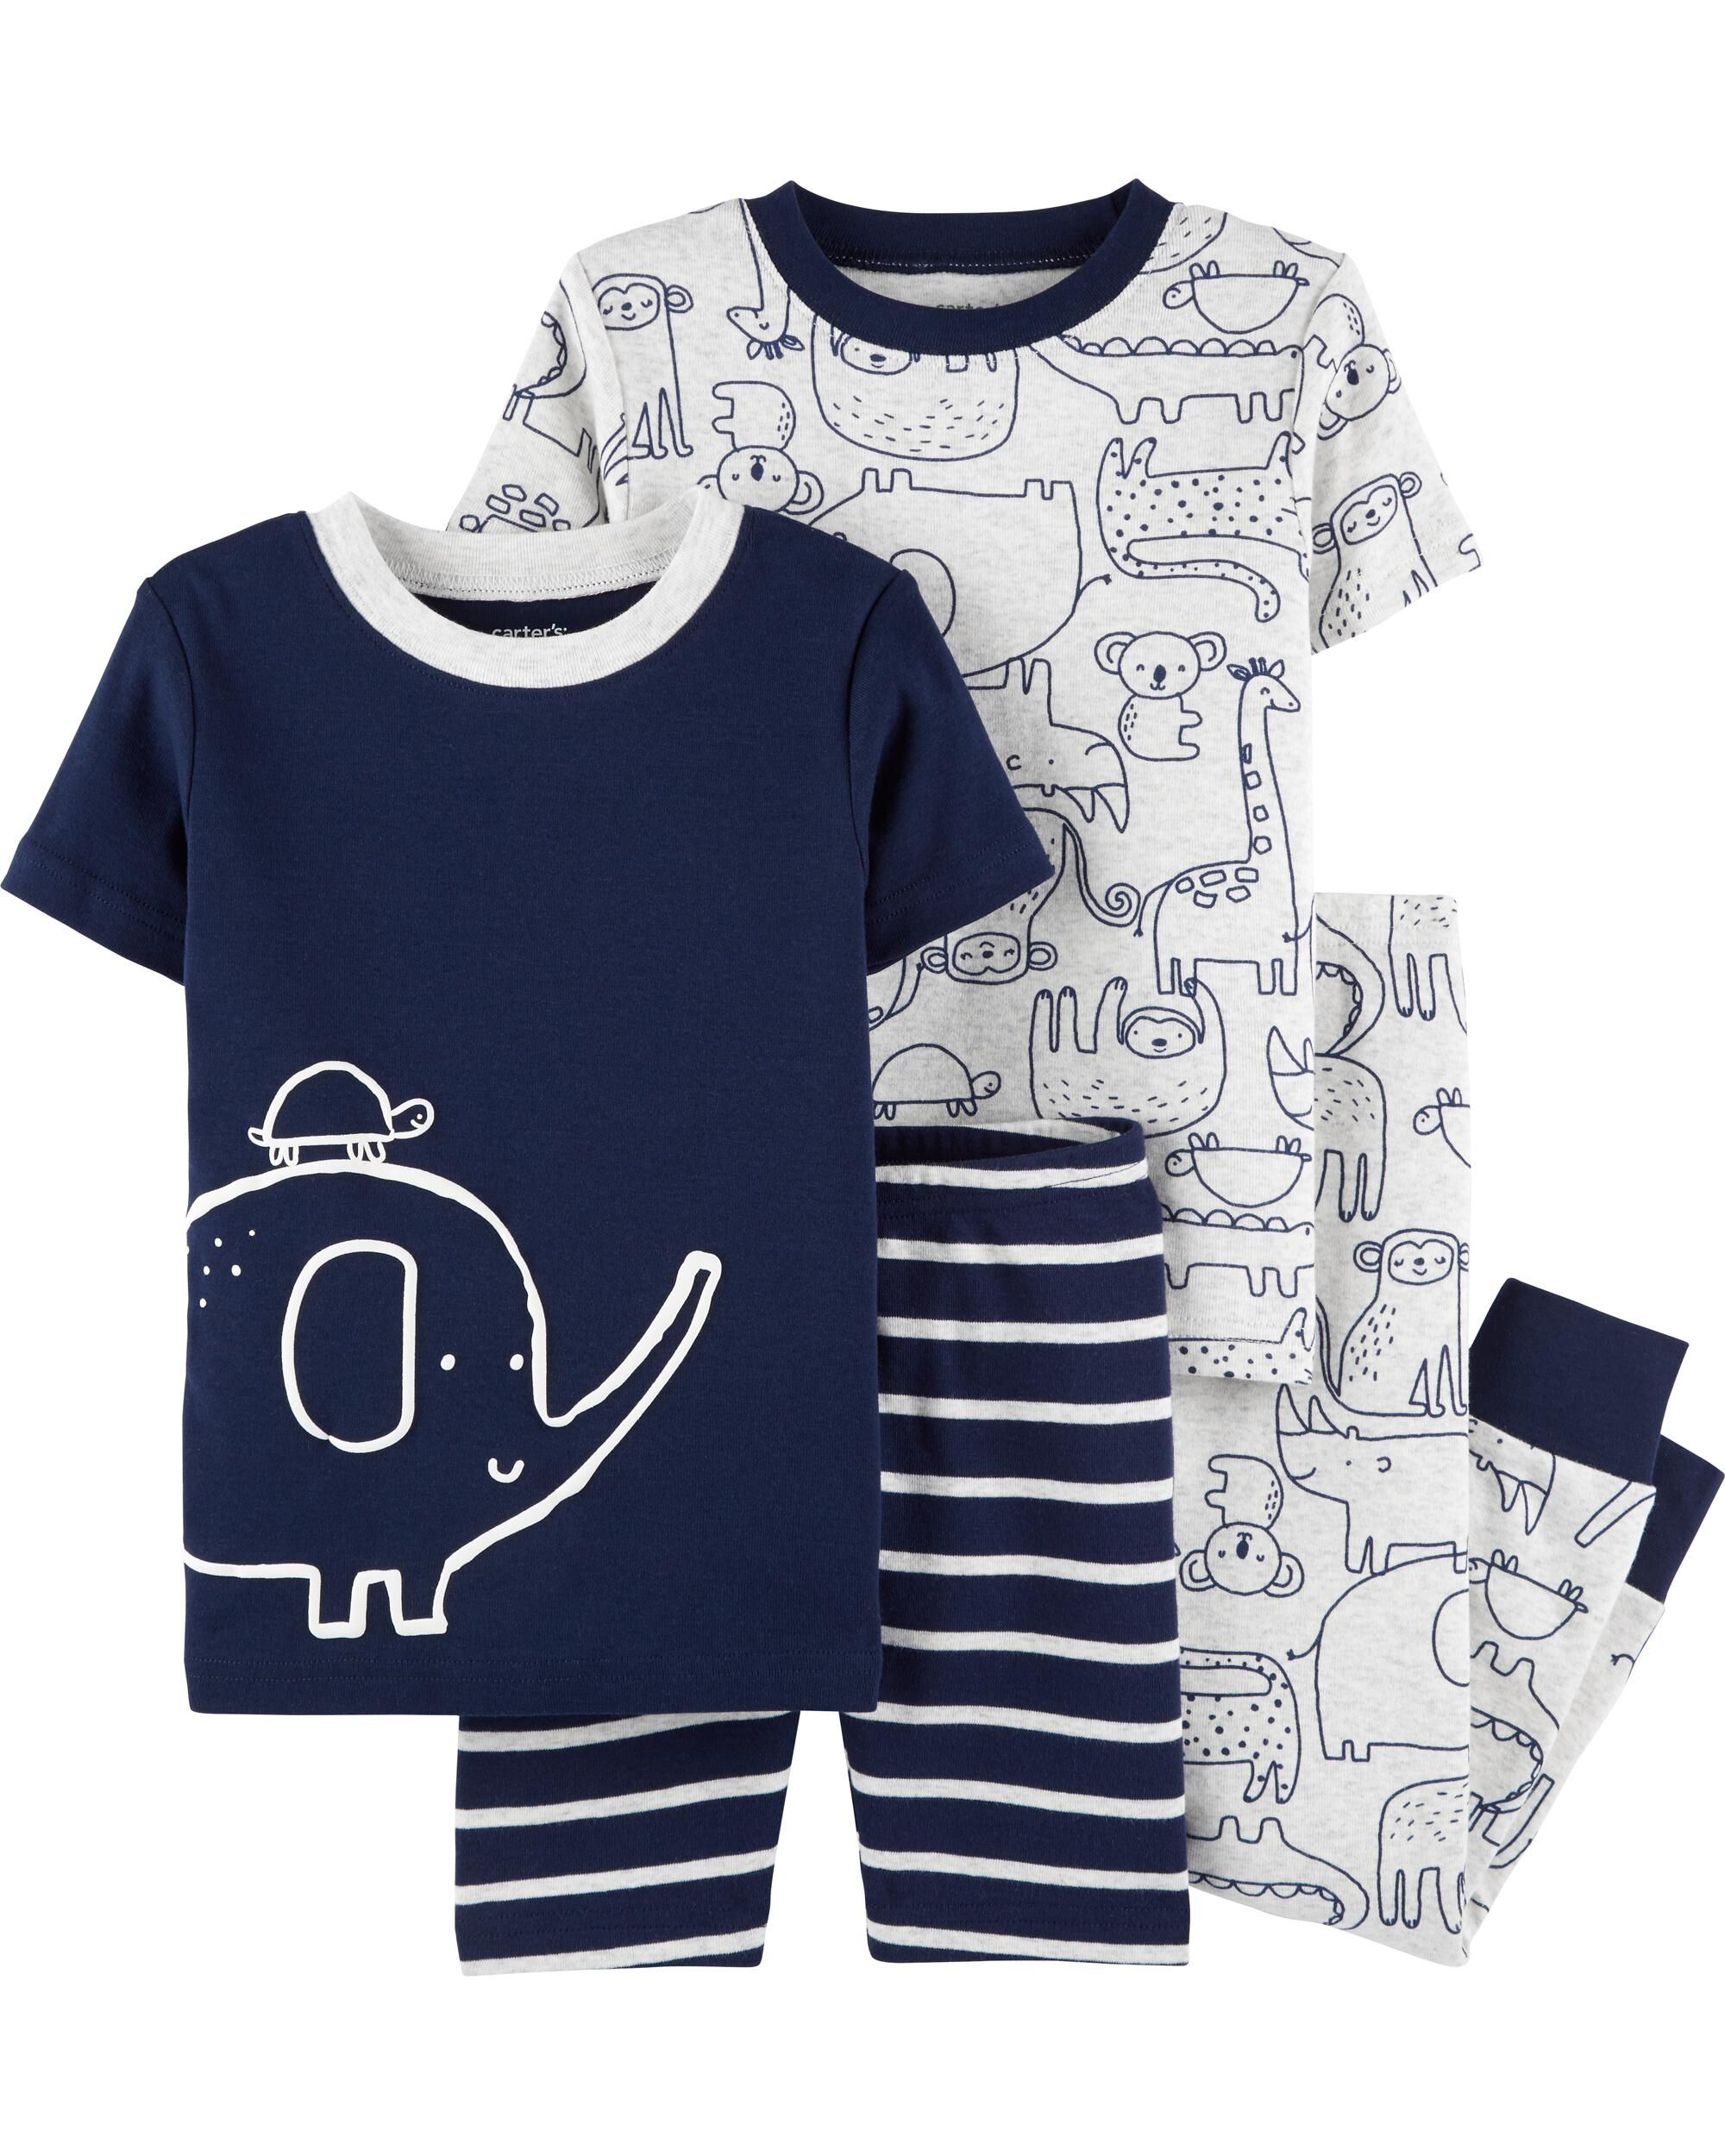 Carters Baby or Toddler Boys' or Girls' 4-Piece PJ Sets (select styles) 2 for $16.50 ($8.25 per 4pc set) + free shipping